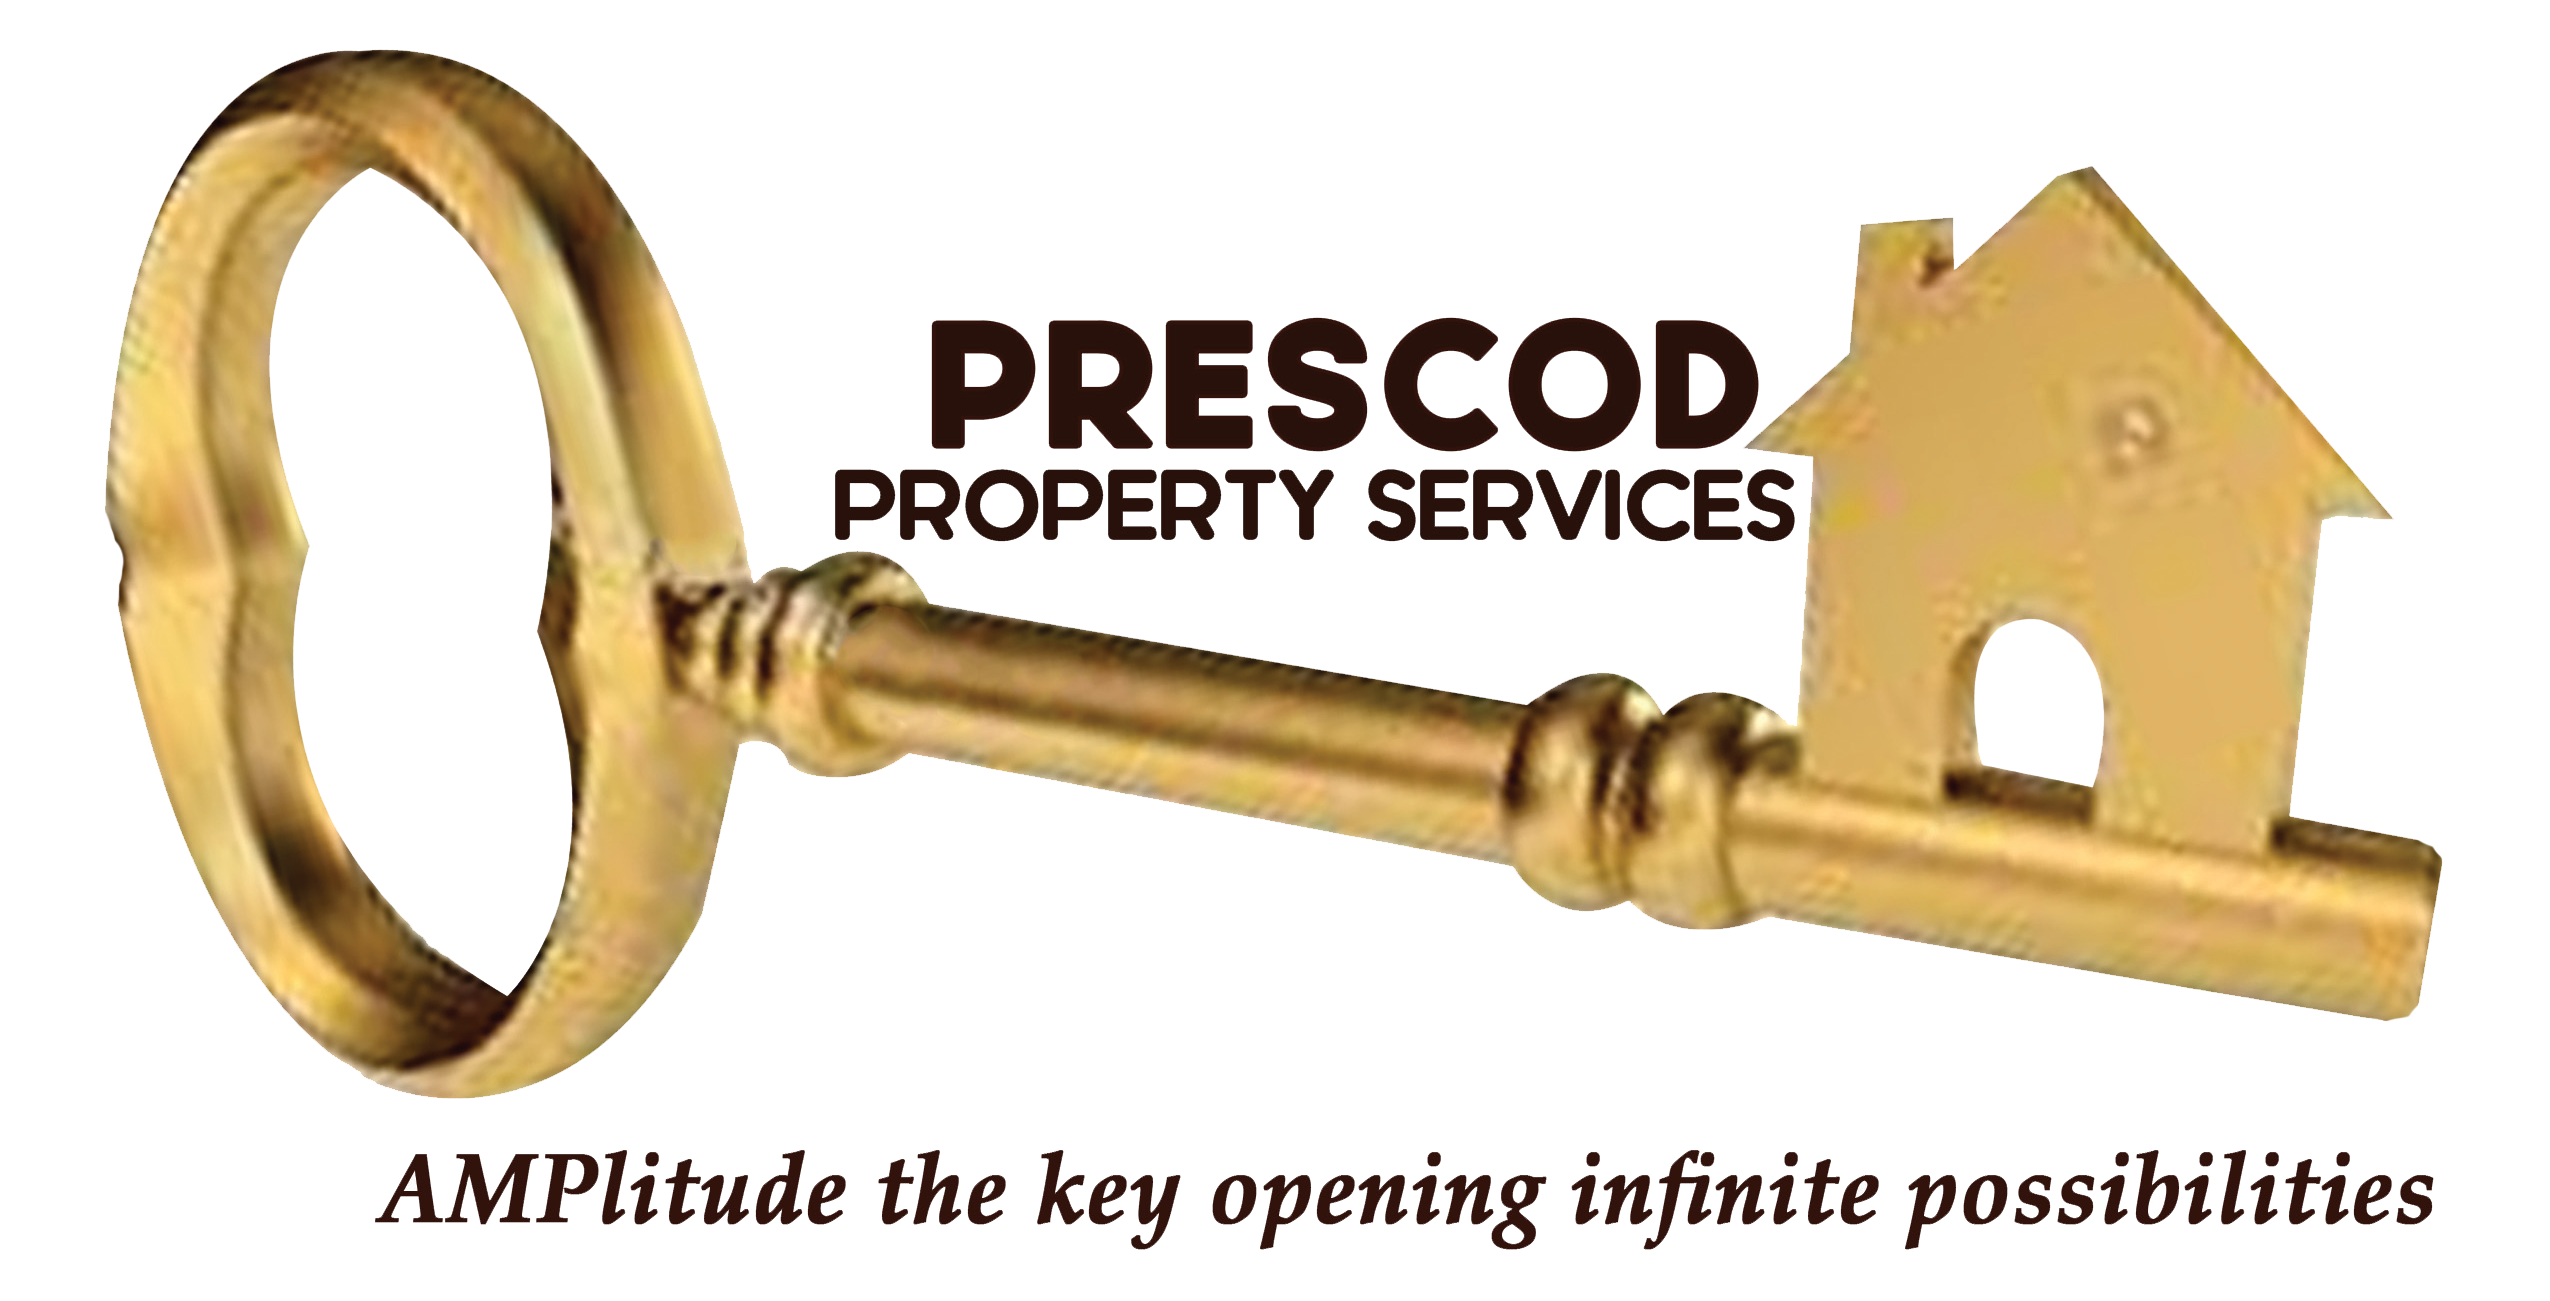 Prescod Property Services-